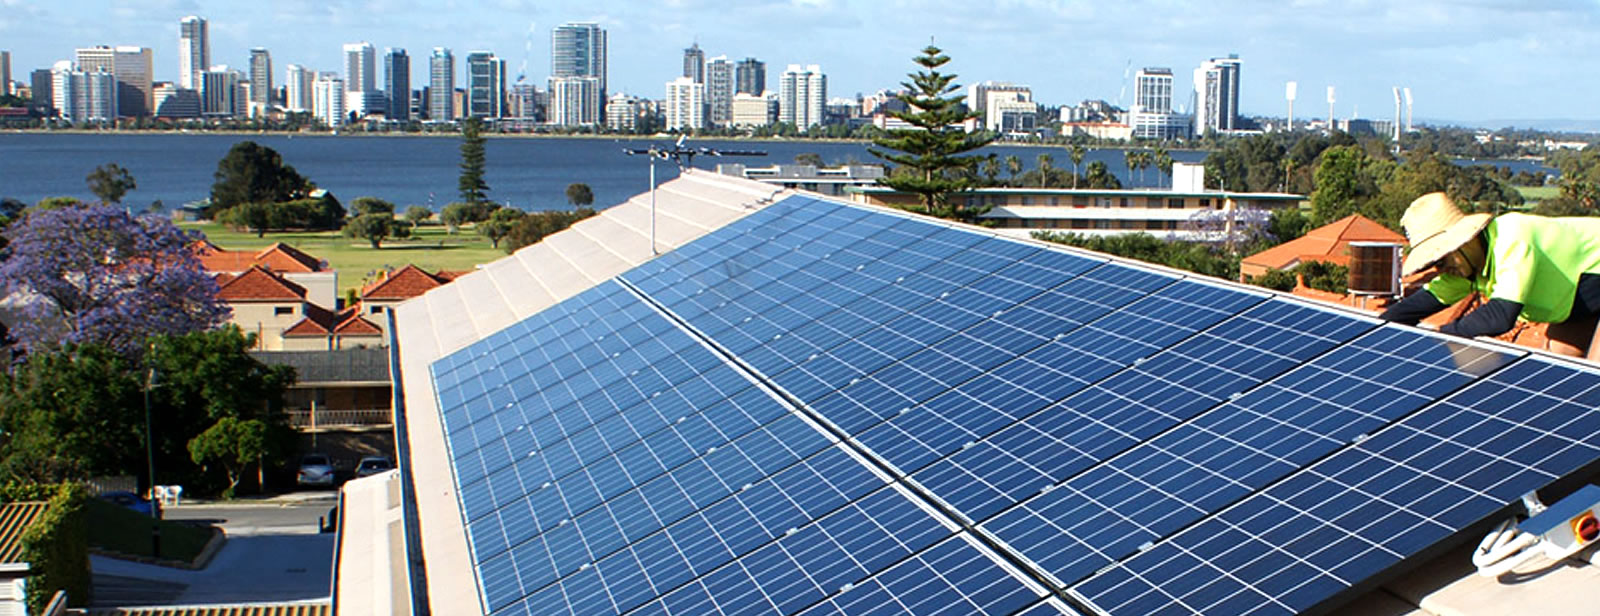 Australia to Expand Solar Capacity by 35 GW